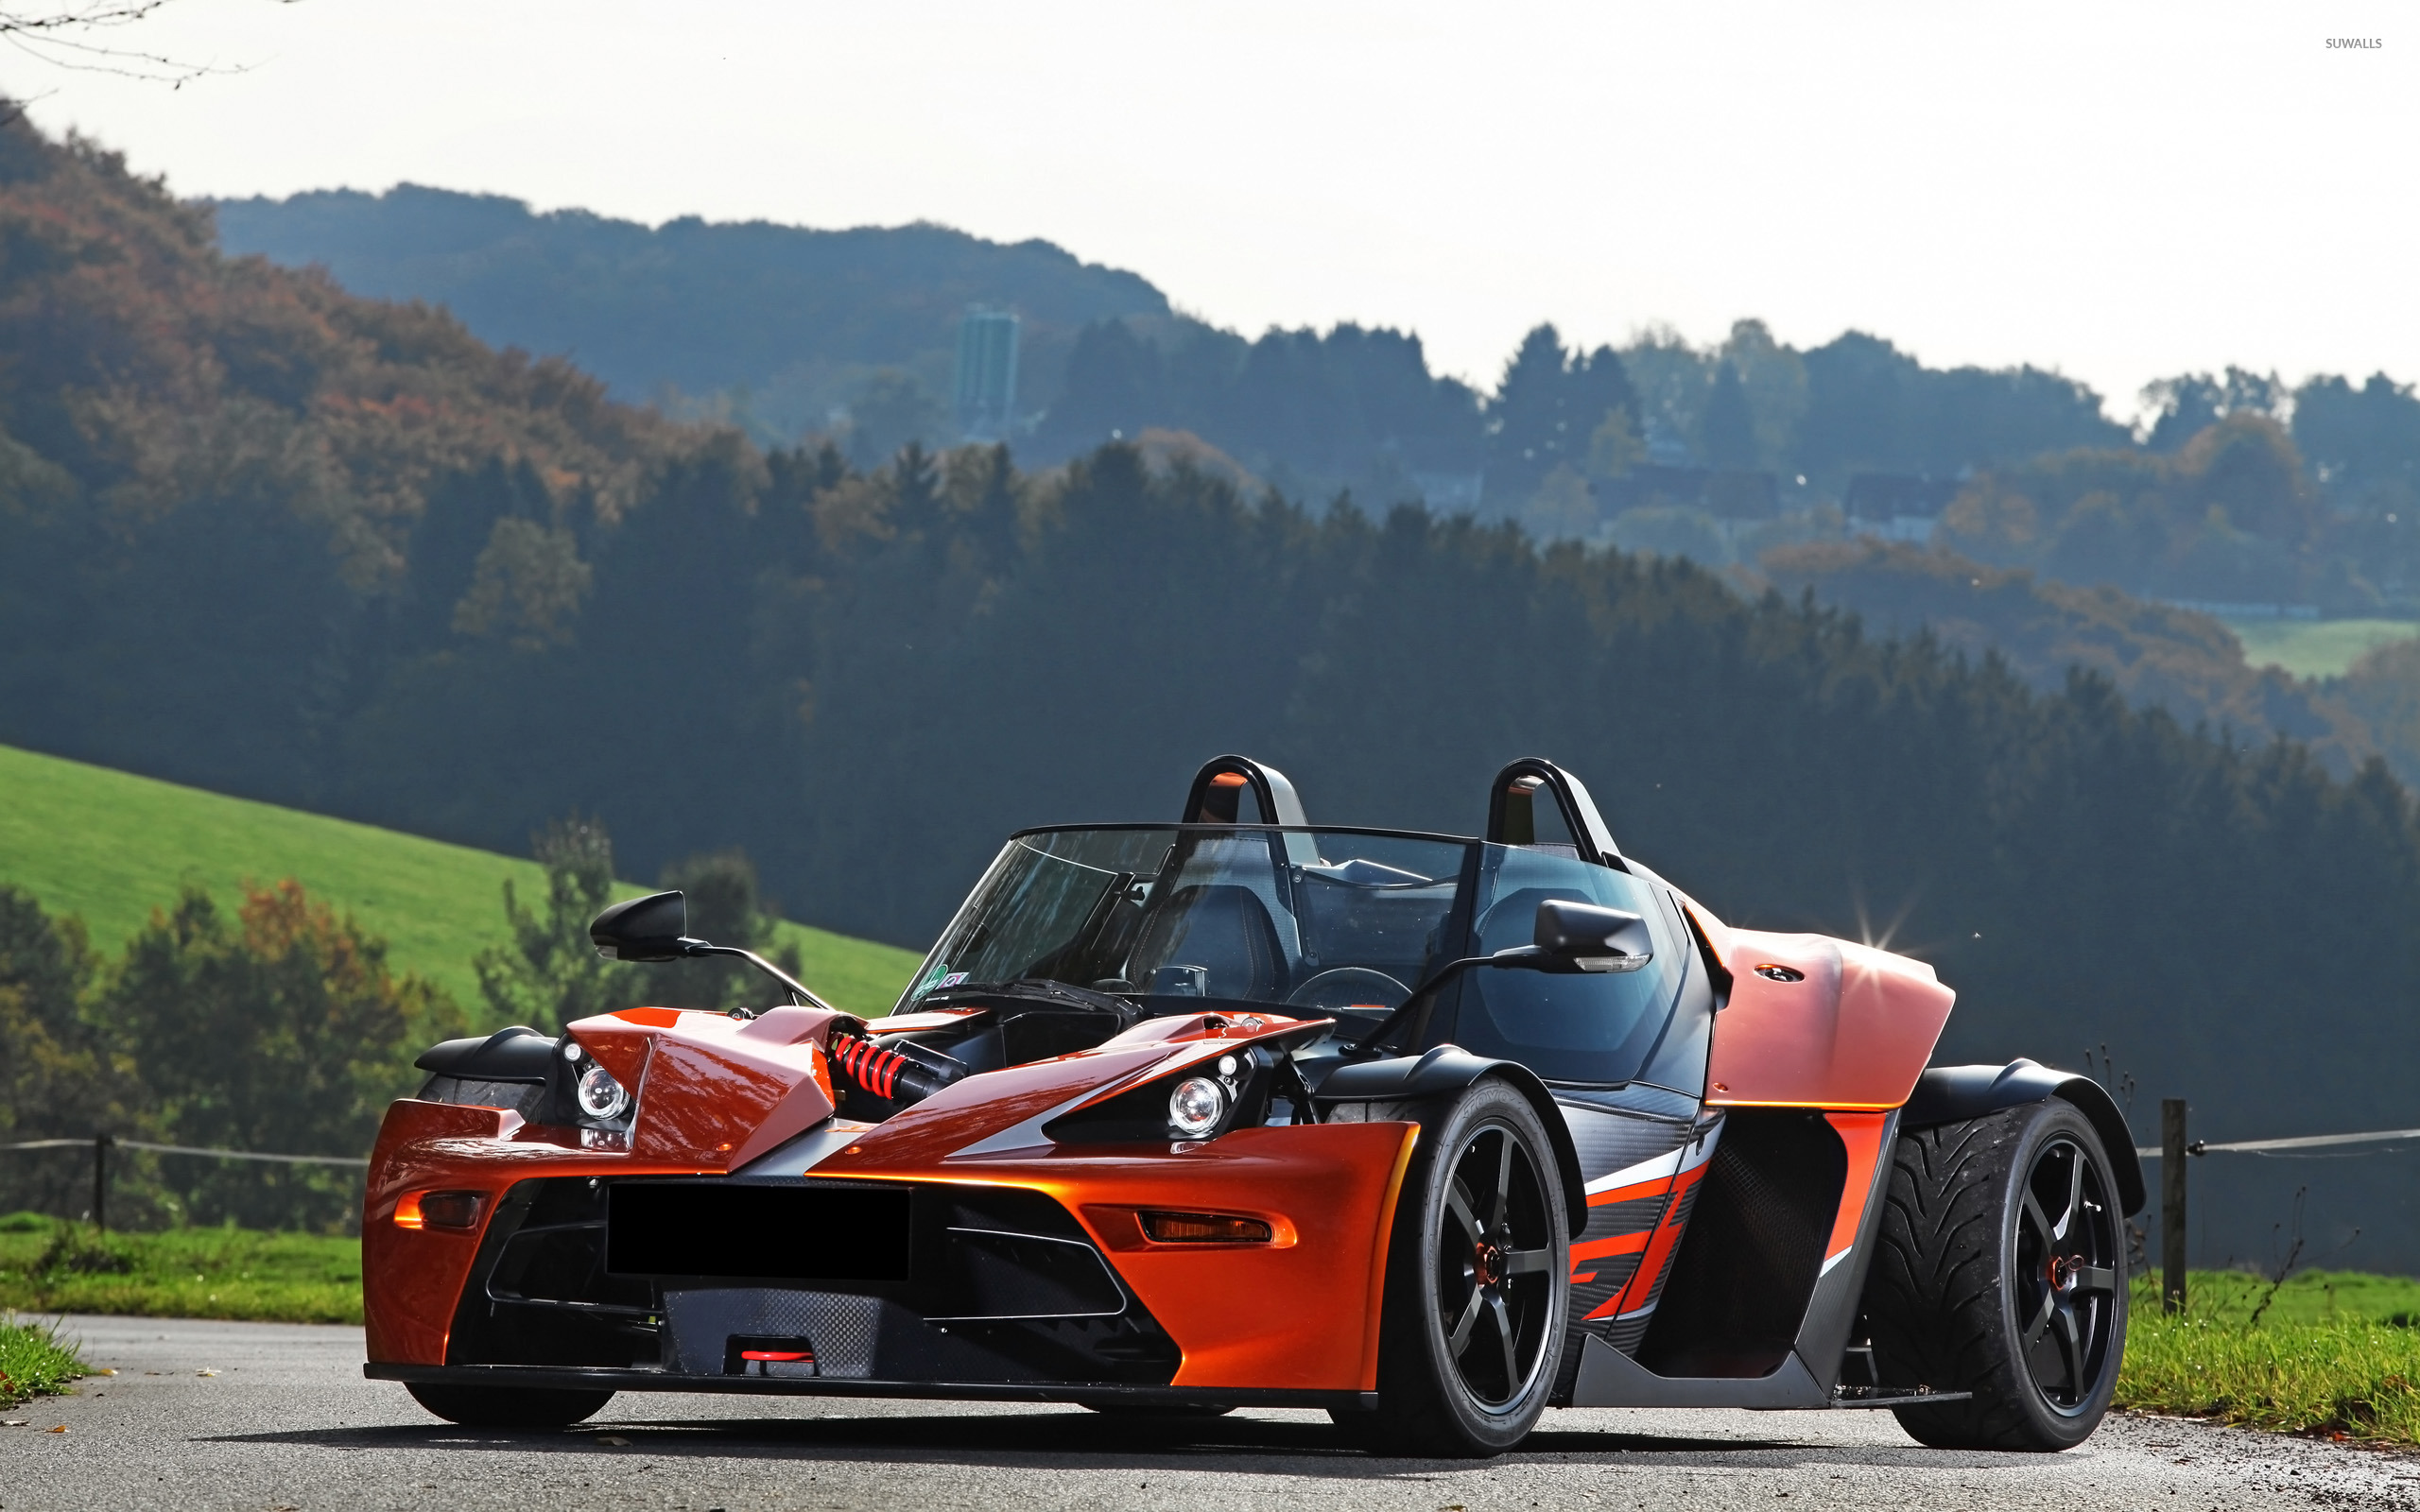 2013 Wimmer KTM X Bow GT Wallpaper